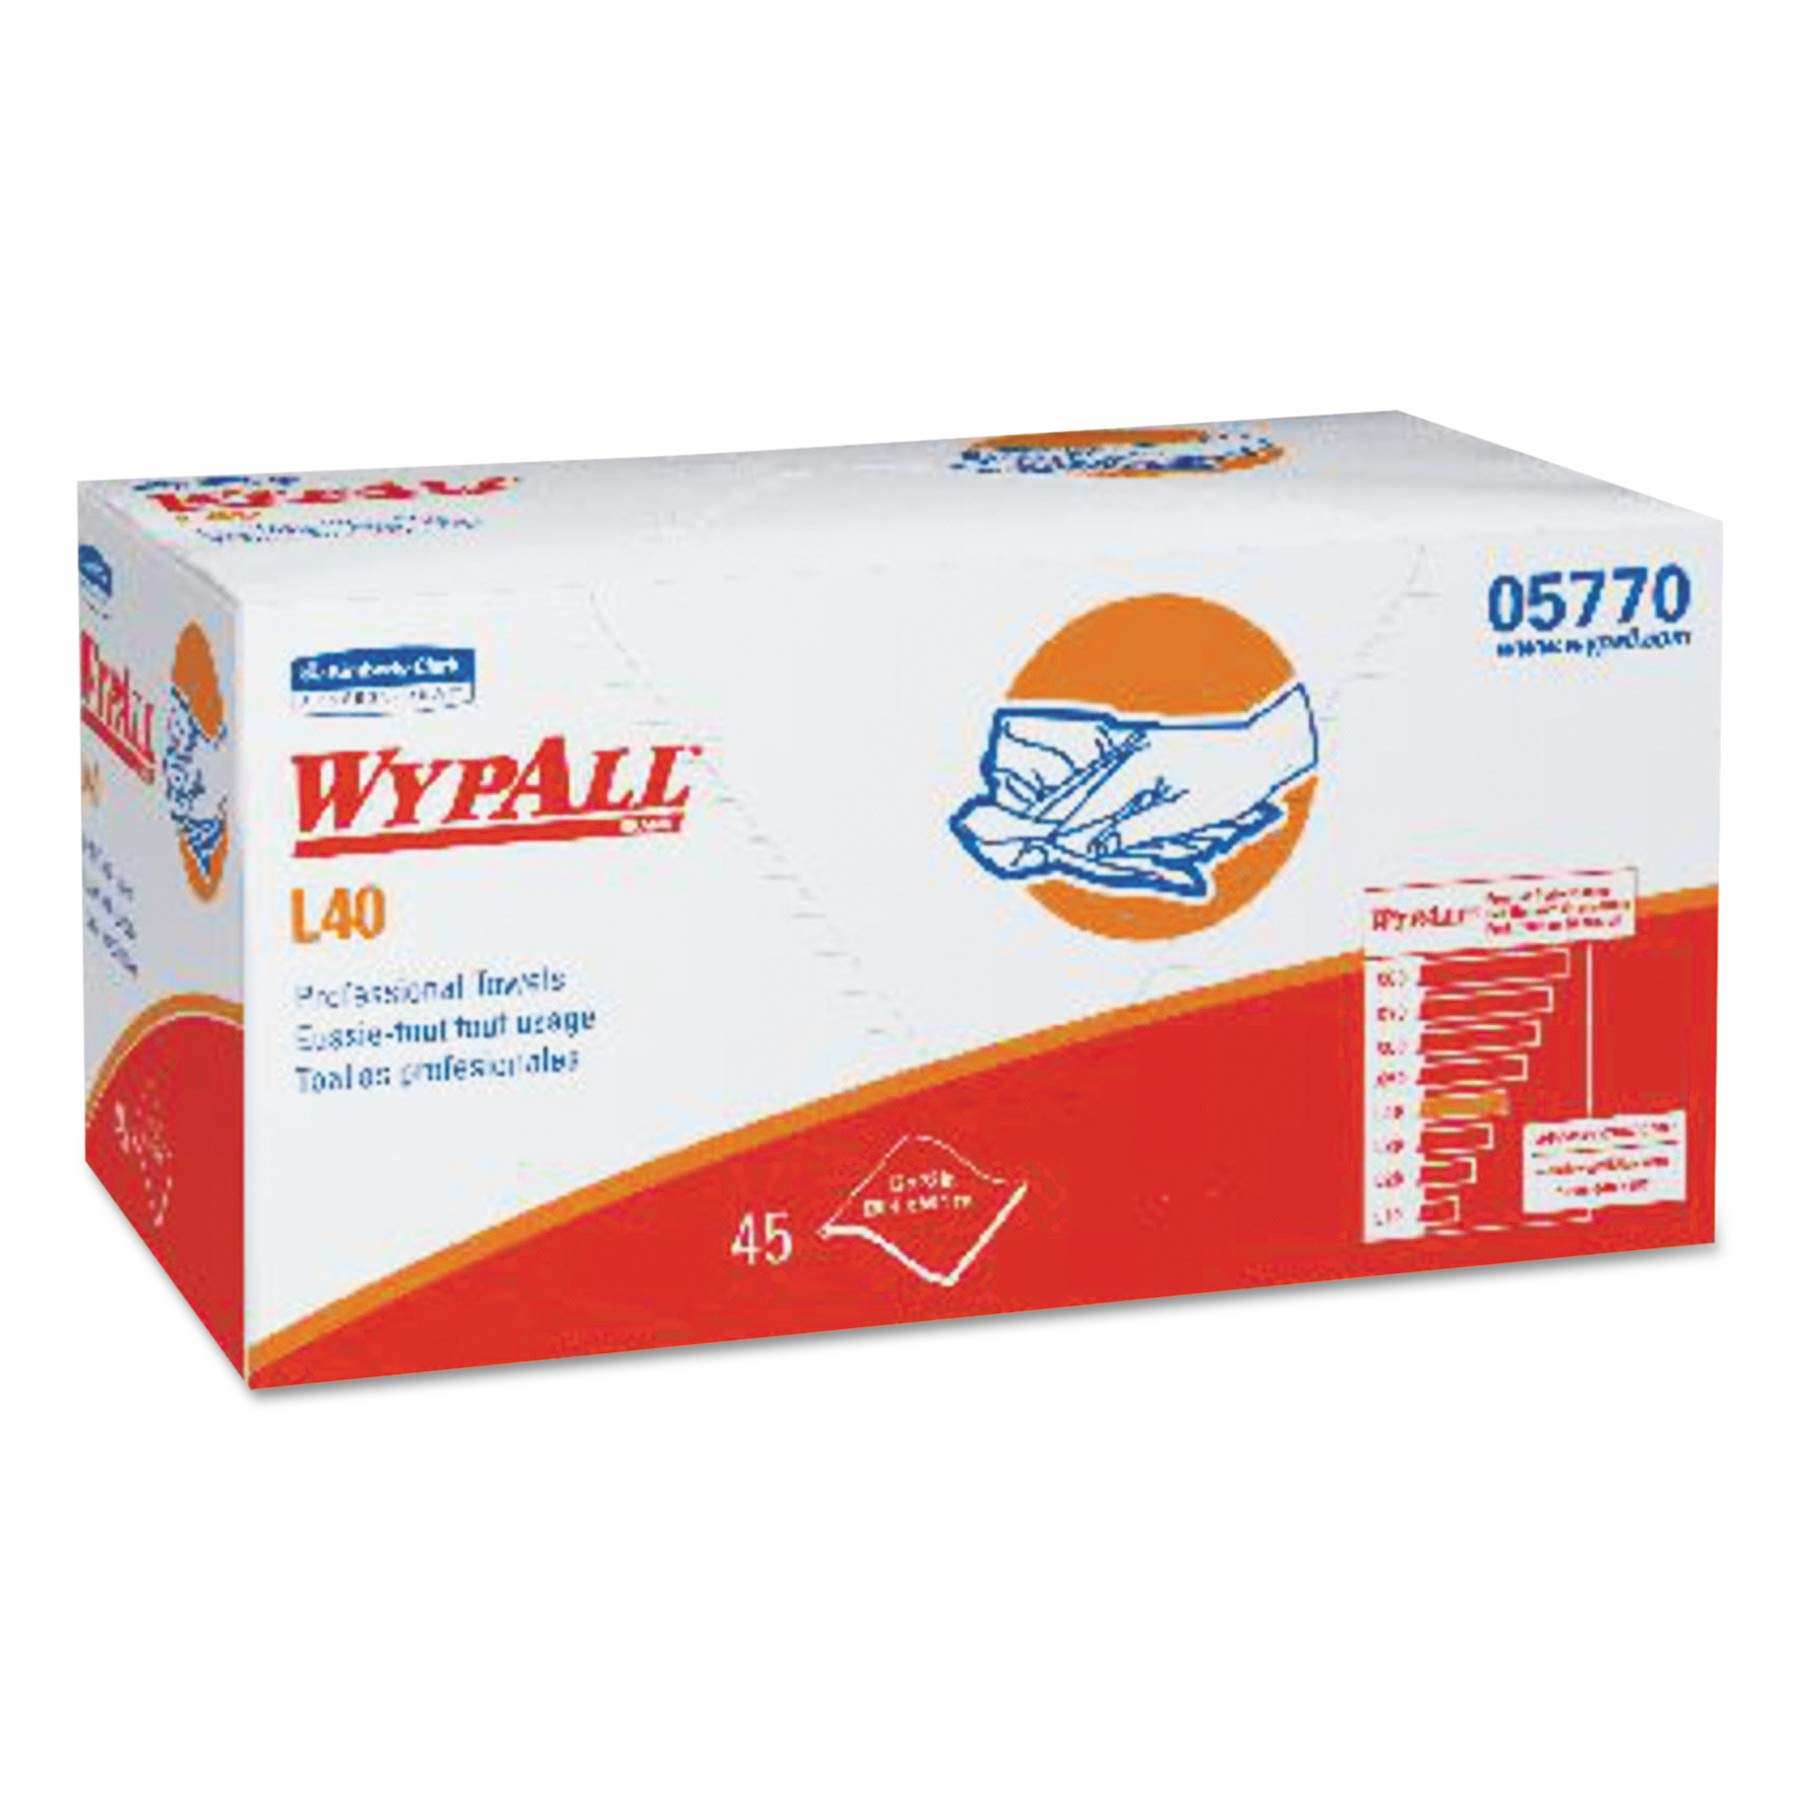 WypAll 05770 L40 Towels, Pro Towels, 12 x 23, White, 45 per Box (Case of 12) by Wypall